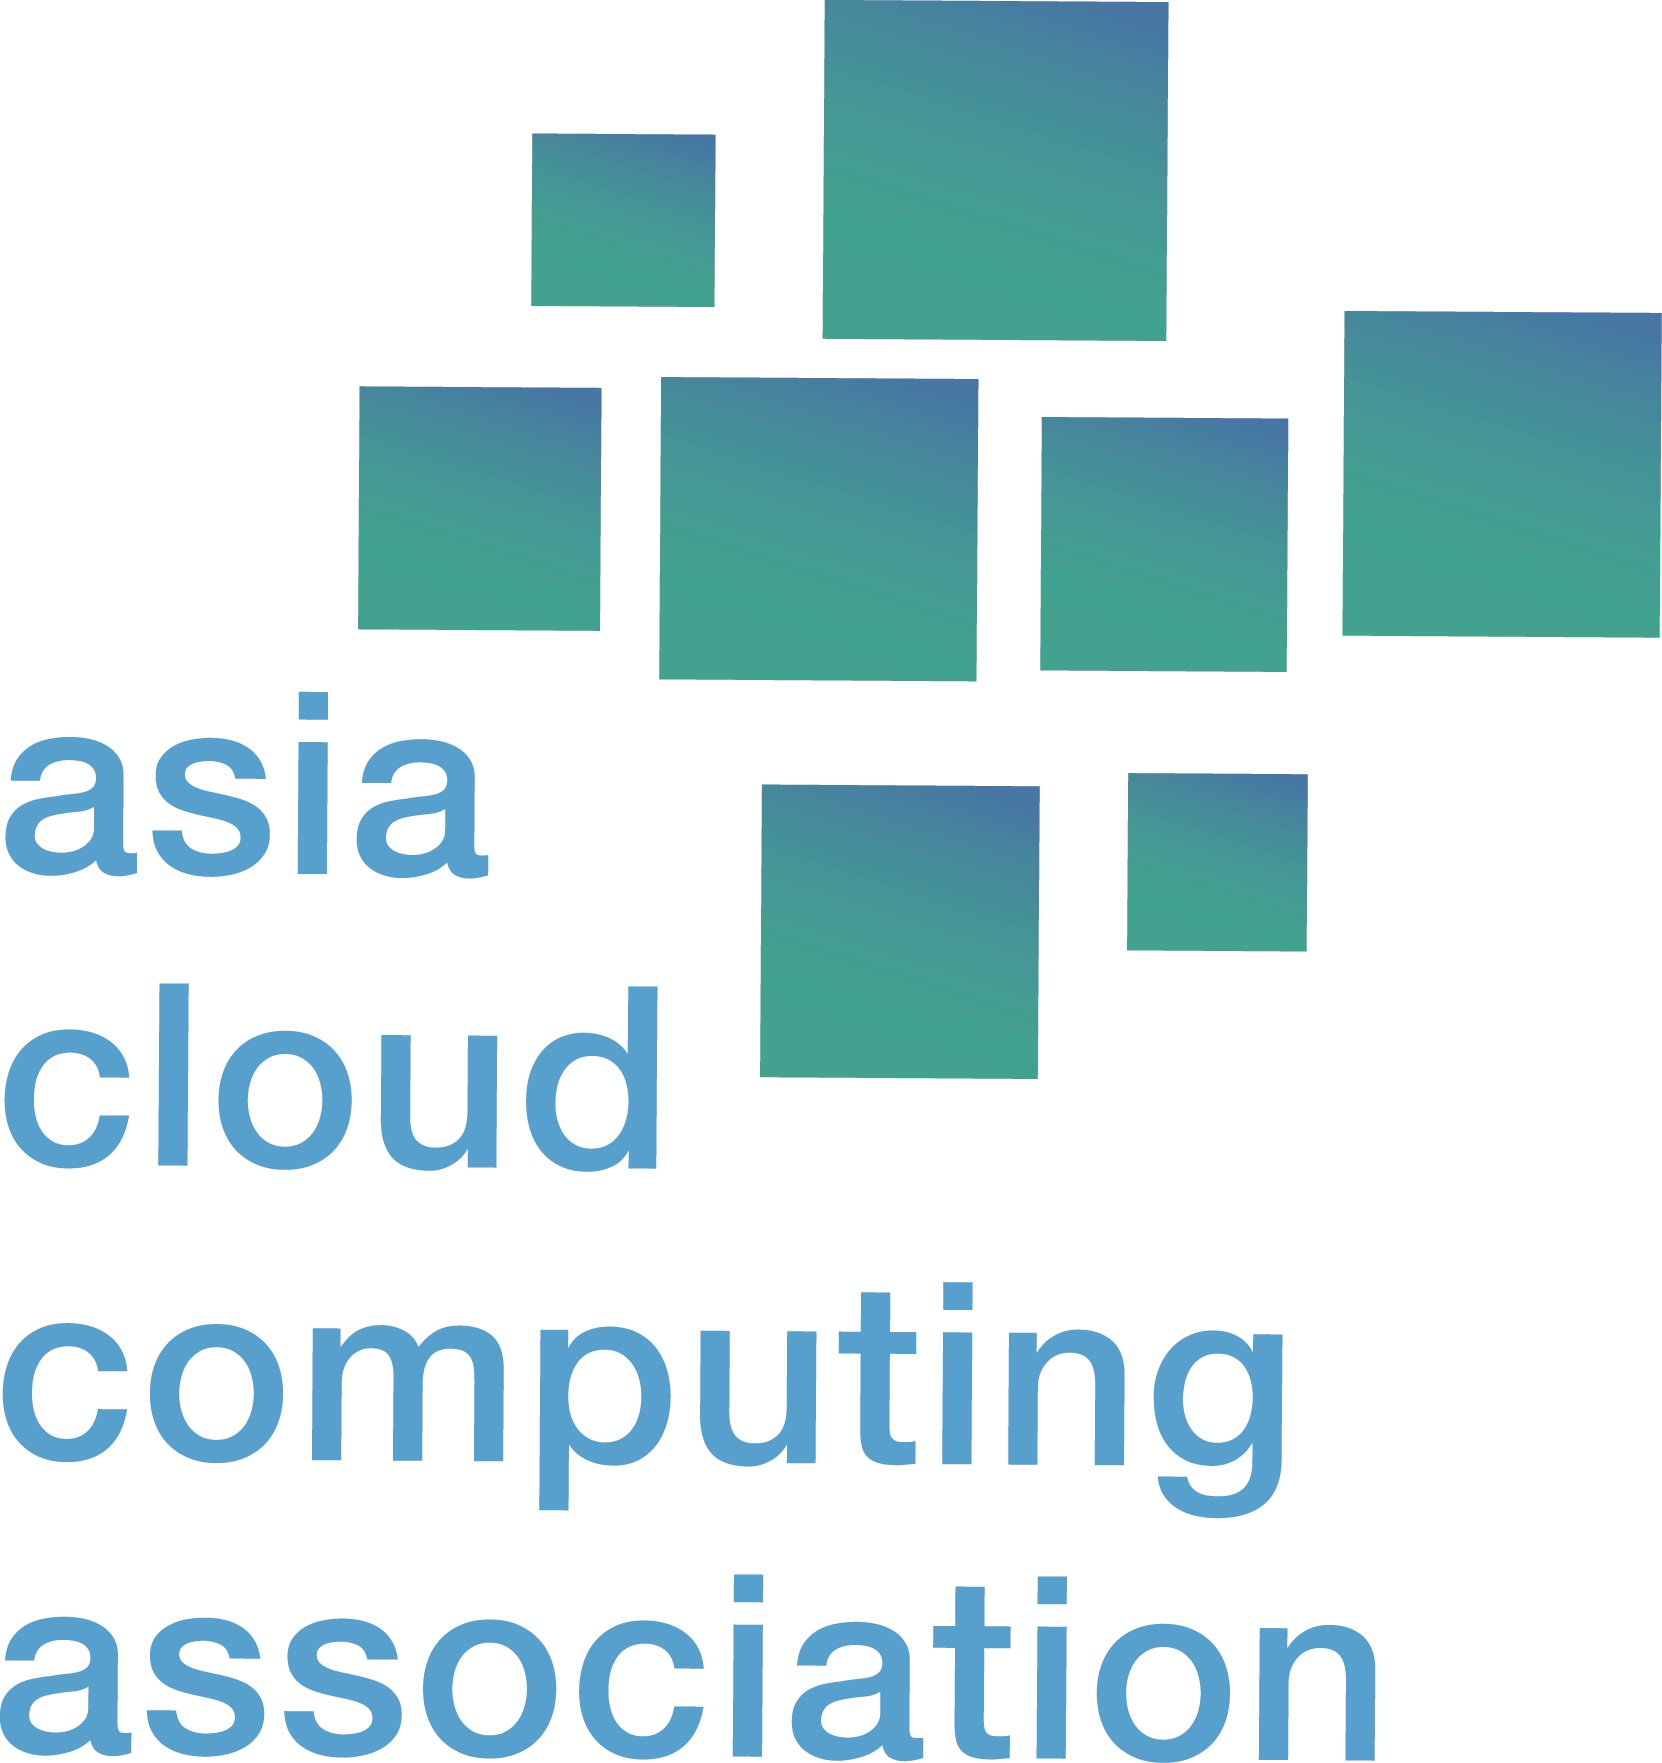 Asia Cloud Computing Association